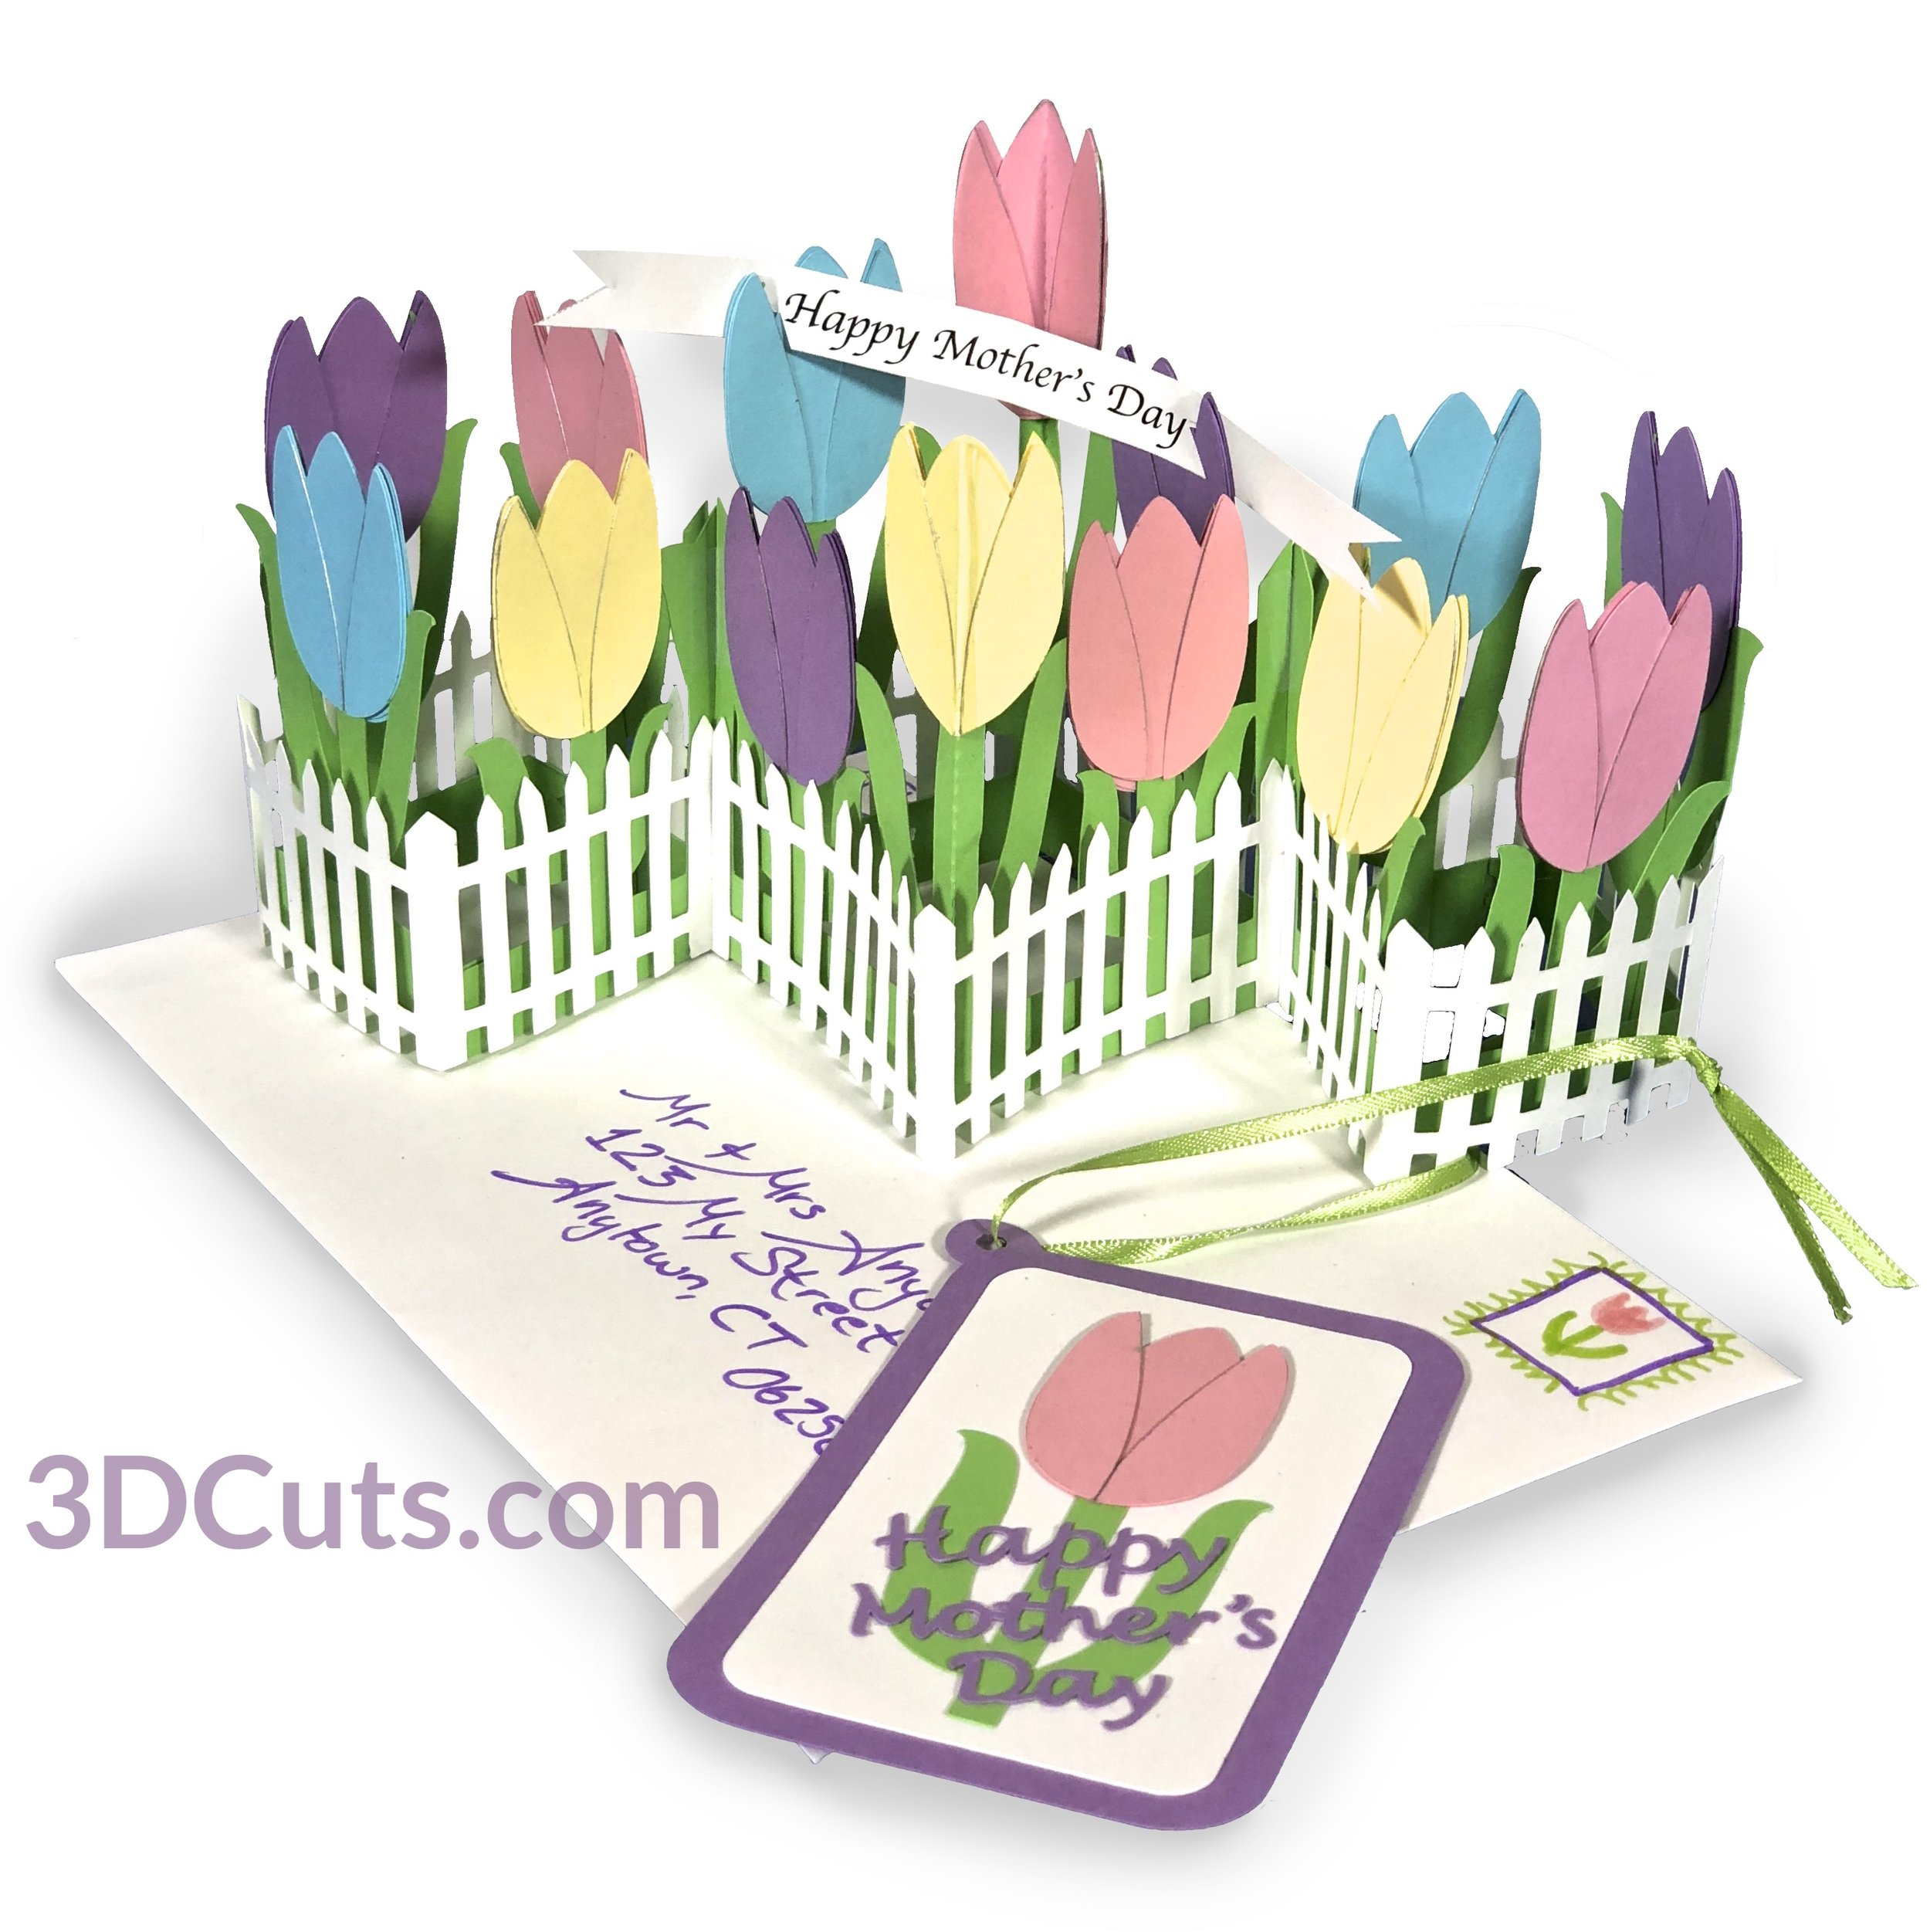 Tulip Zig Zag Card by 3dCuts.com, by Marji Roy, Cutting files in .svg, .dxf, png and .pdf formats for use with Silhouette, Cricut and Brother cutting machines, paper crafting files, SVG Files